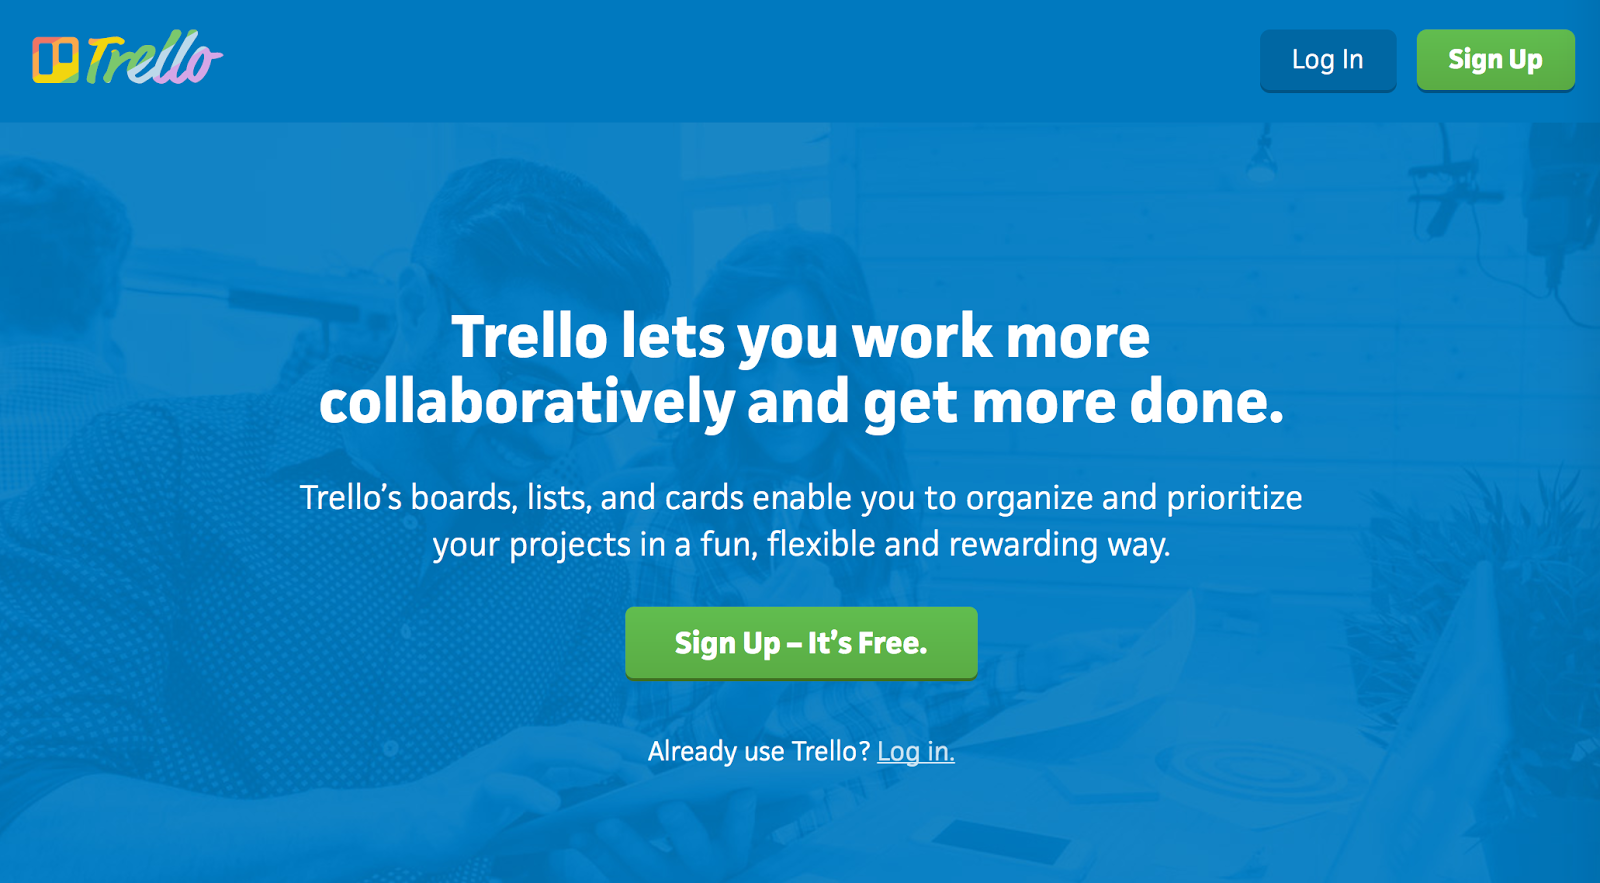 Trello lets you collaborate and work efficiently with your team members, helping you get more done in less time.